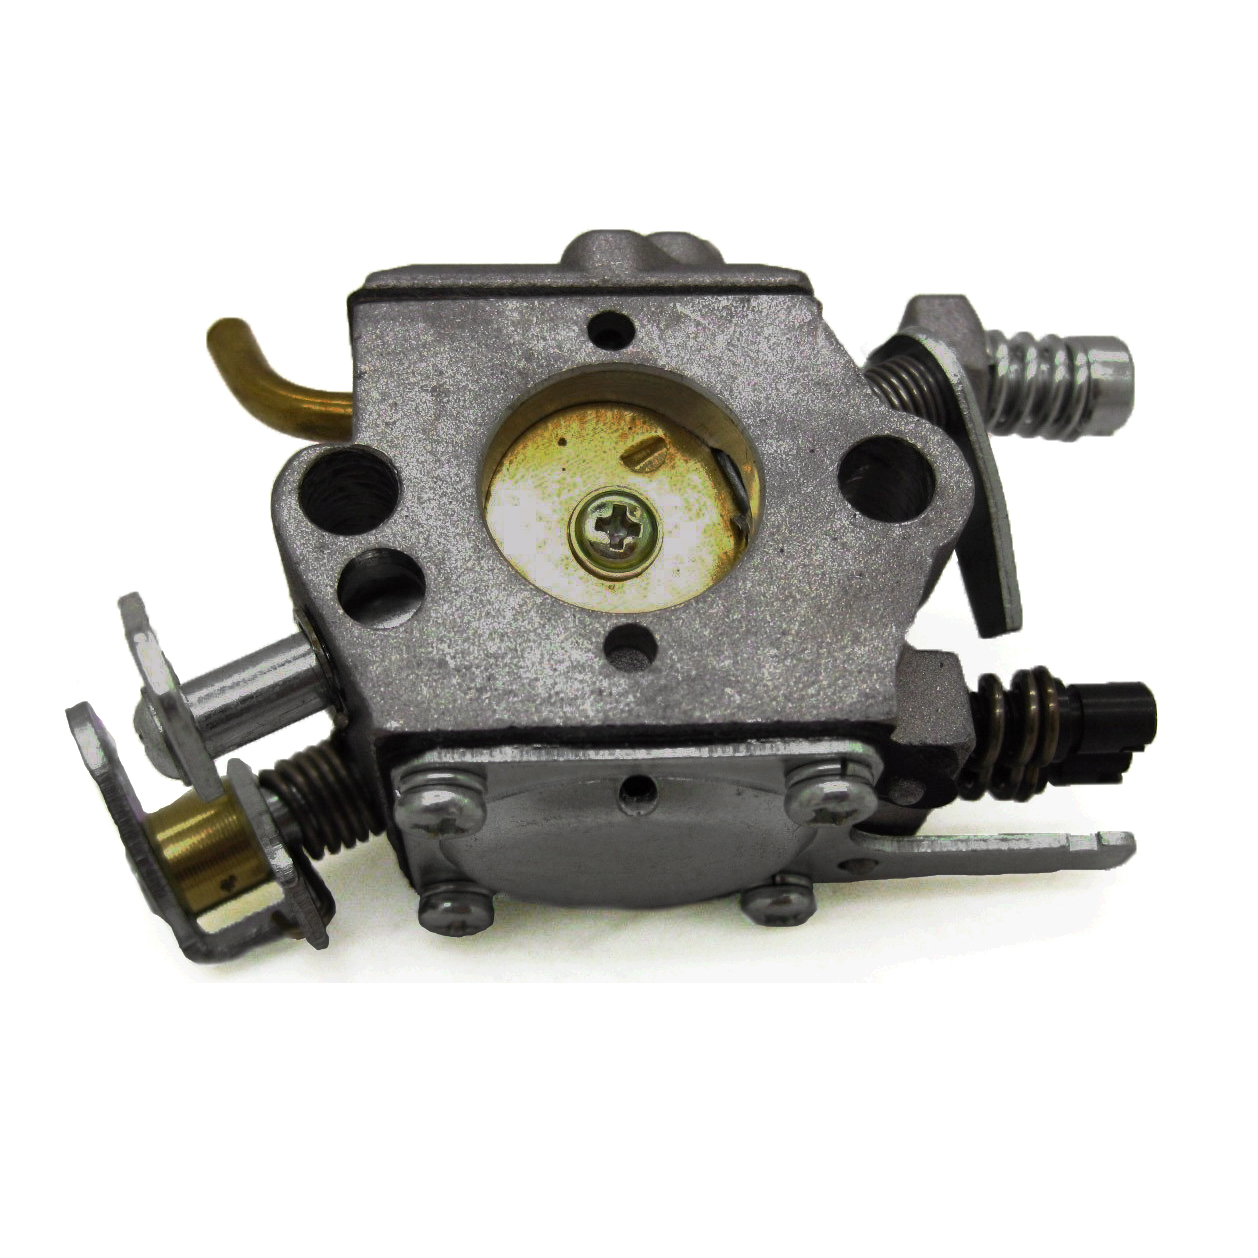 Walbro Carburetor WT-834-1 for Echo CS2600, 2 Cycle Engine Chainsaw & Others